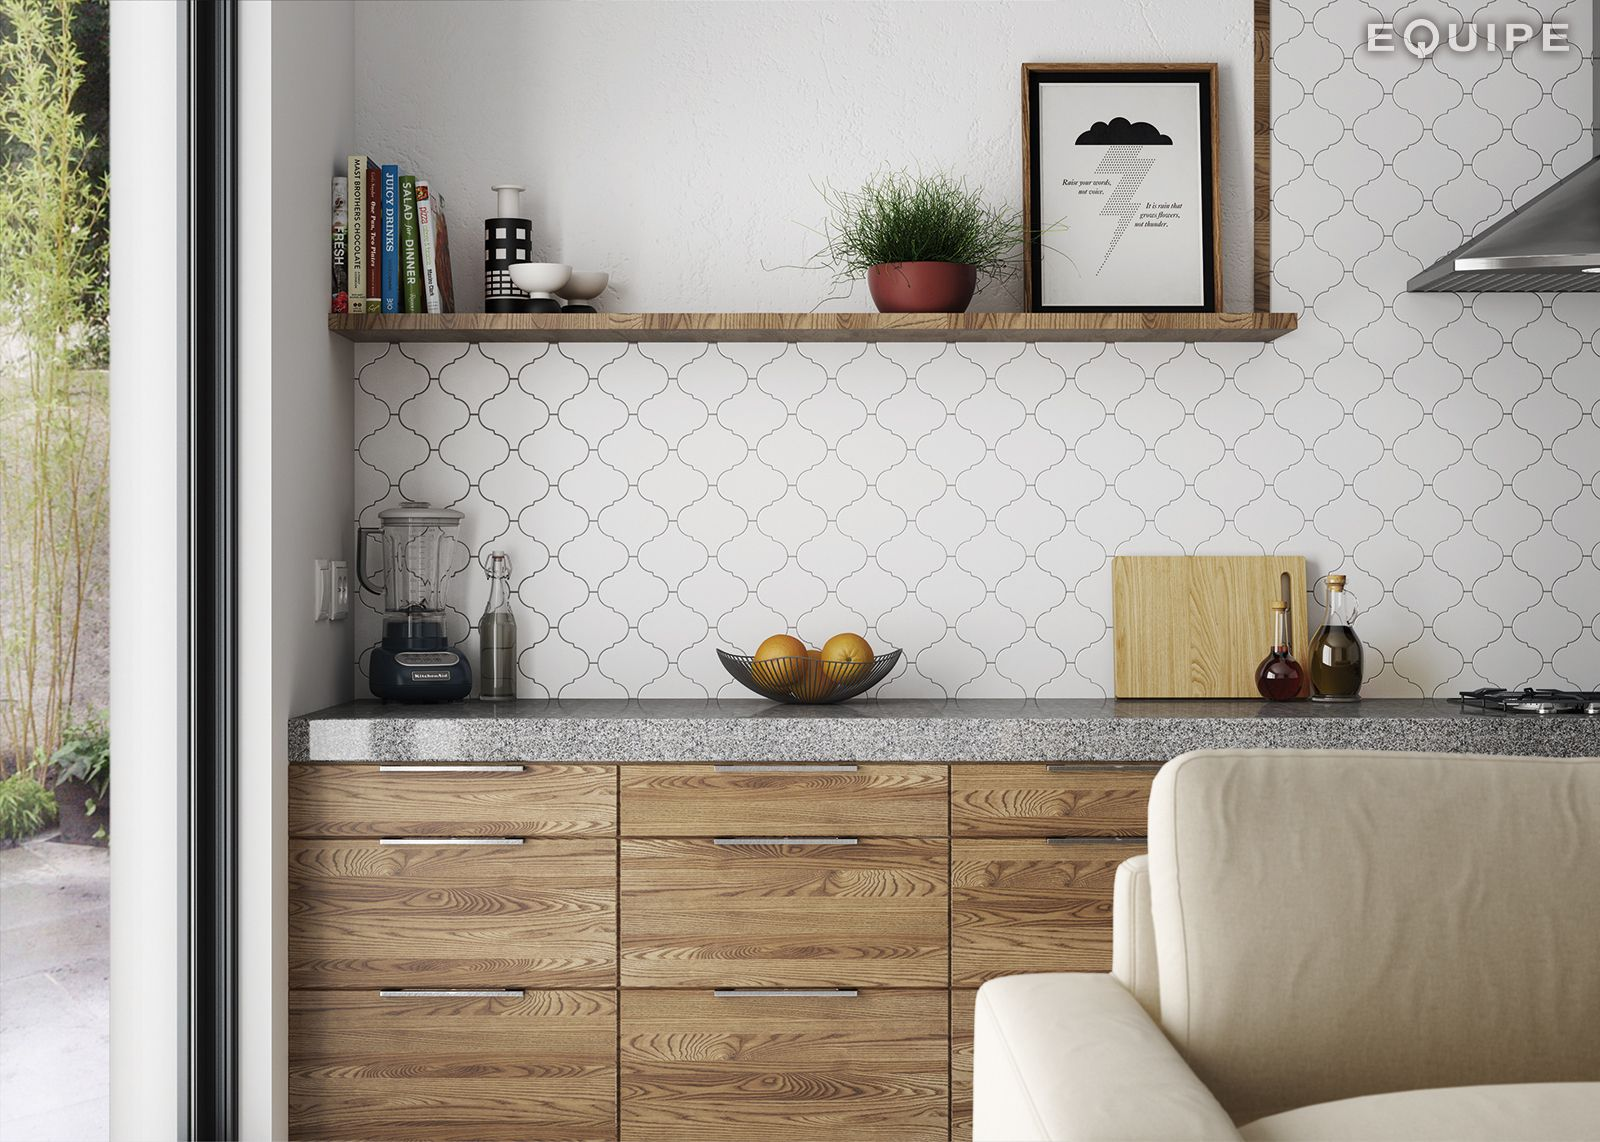 Scale Alhambra White Matt 12x12 | kitchens | Pinterest